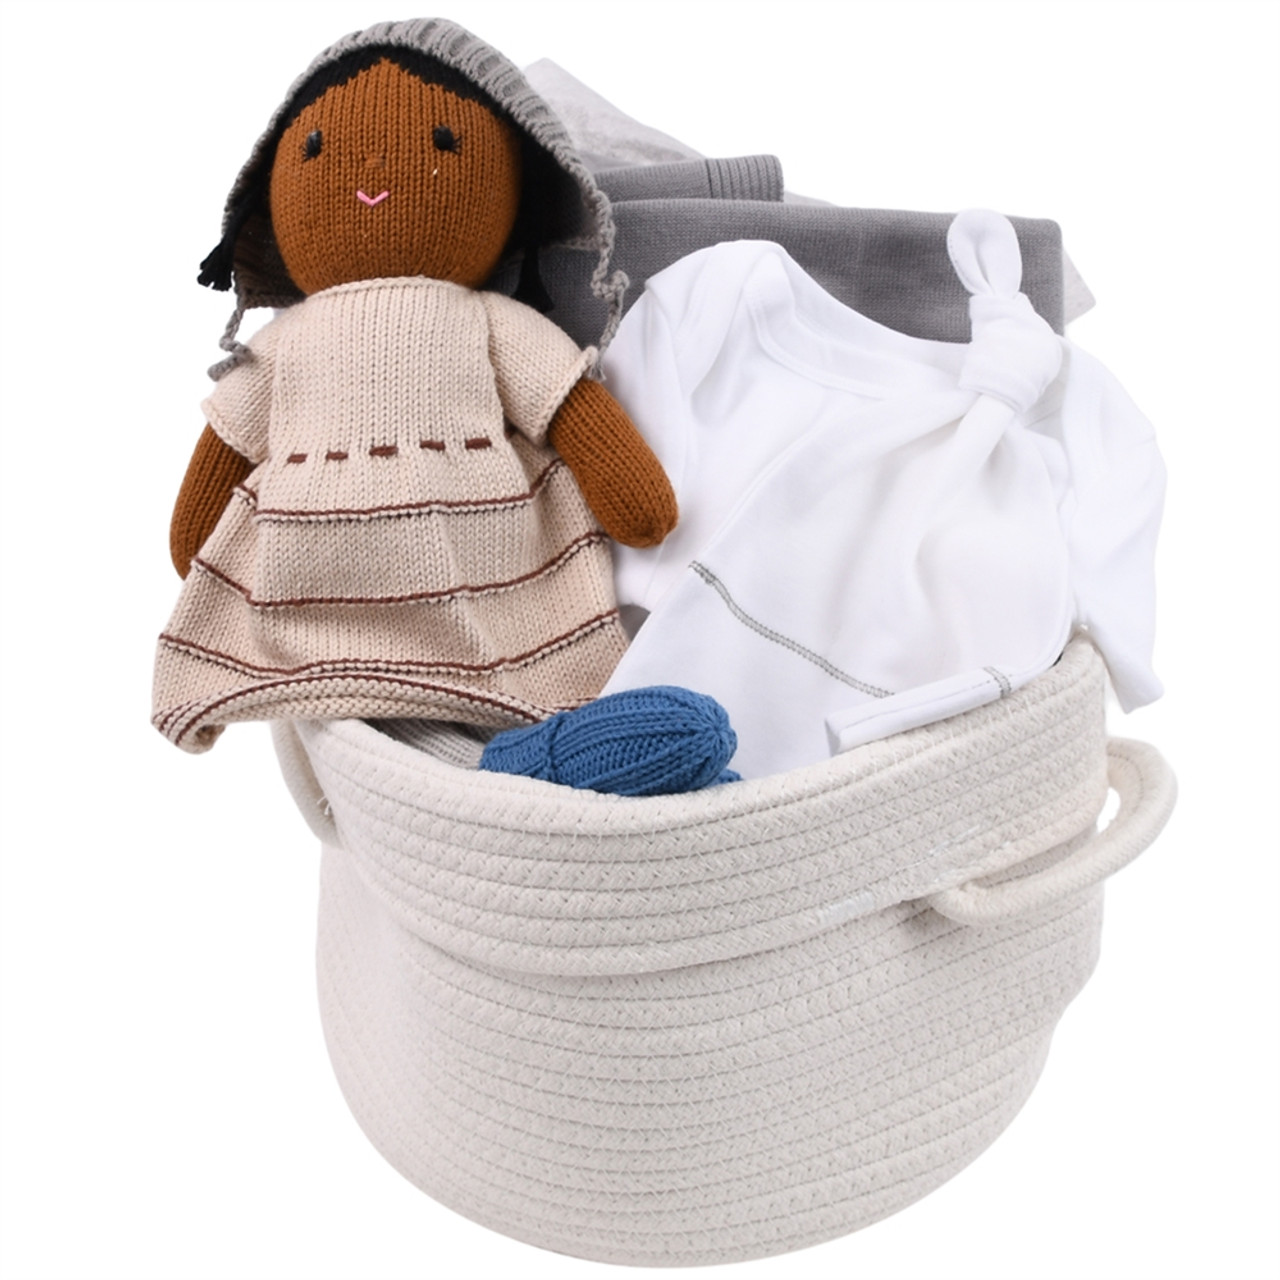 New Baby Gift Basket - Ready for Fun